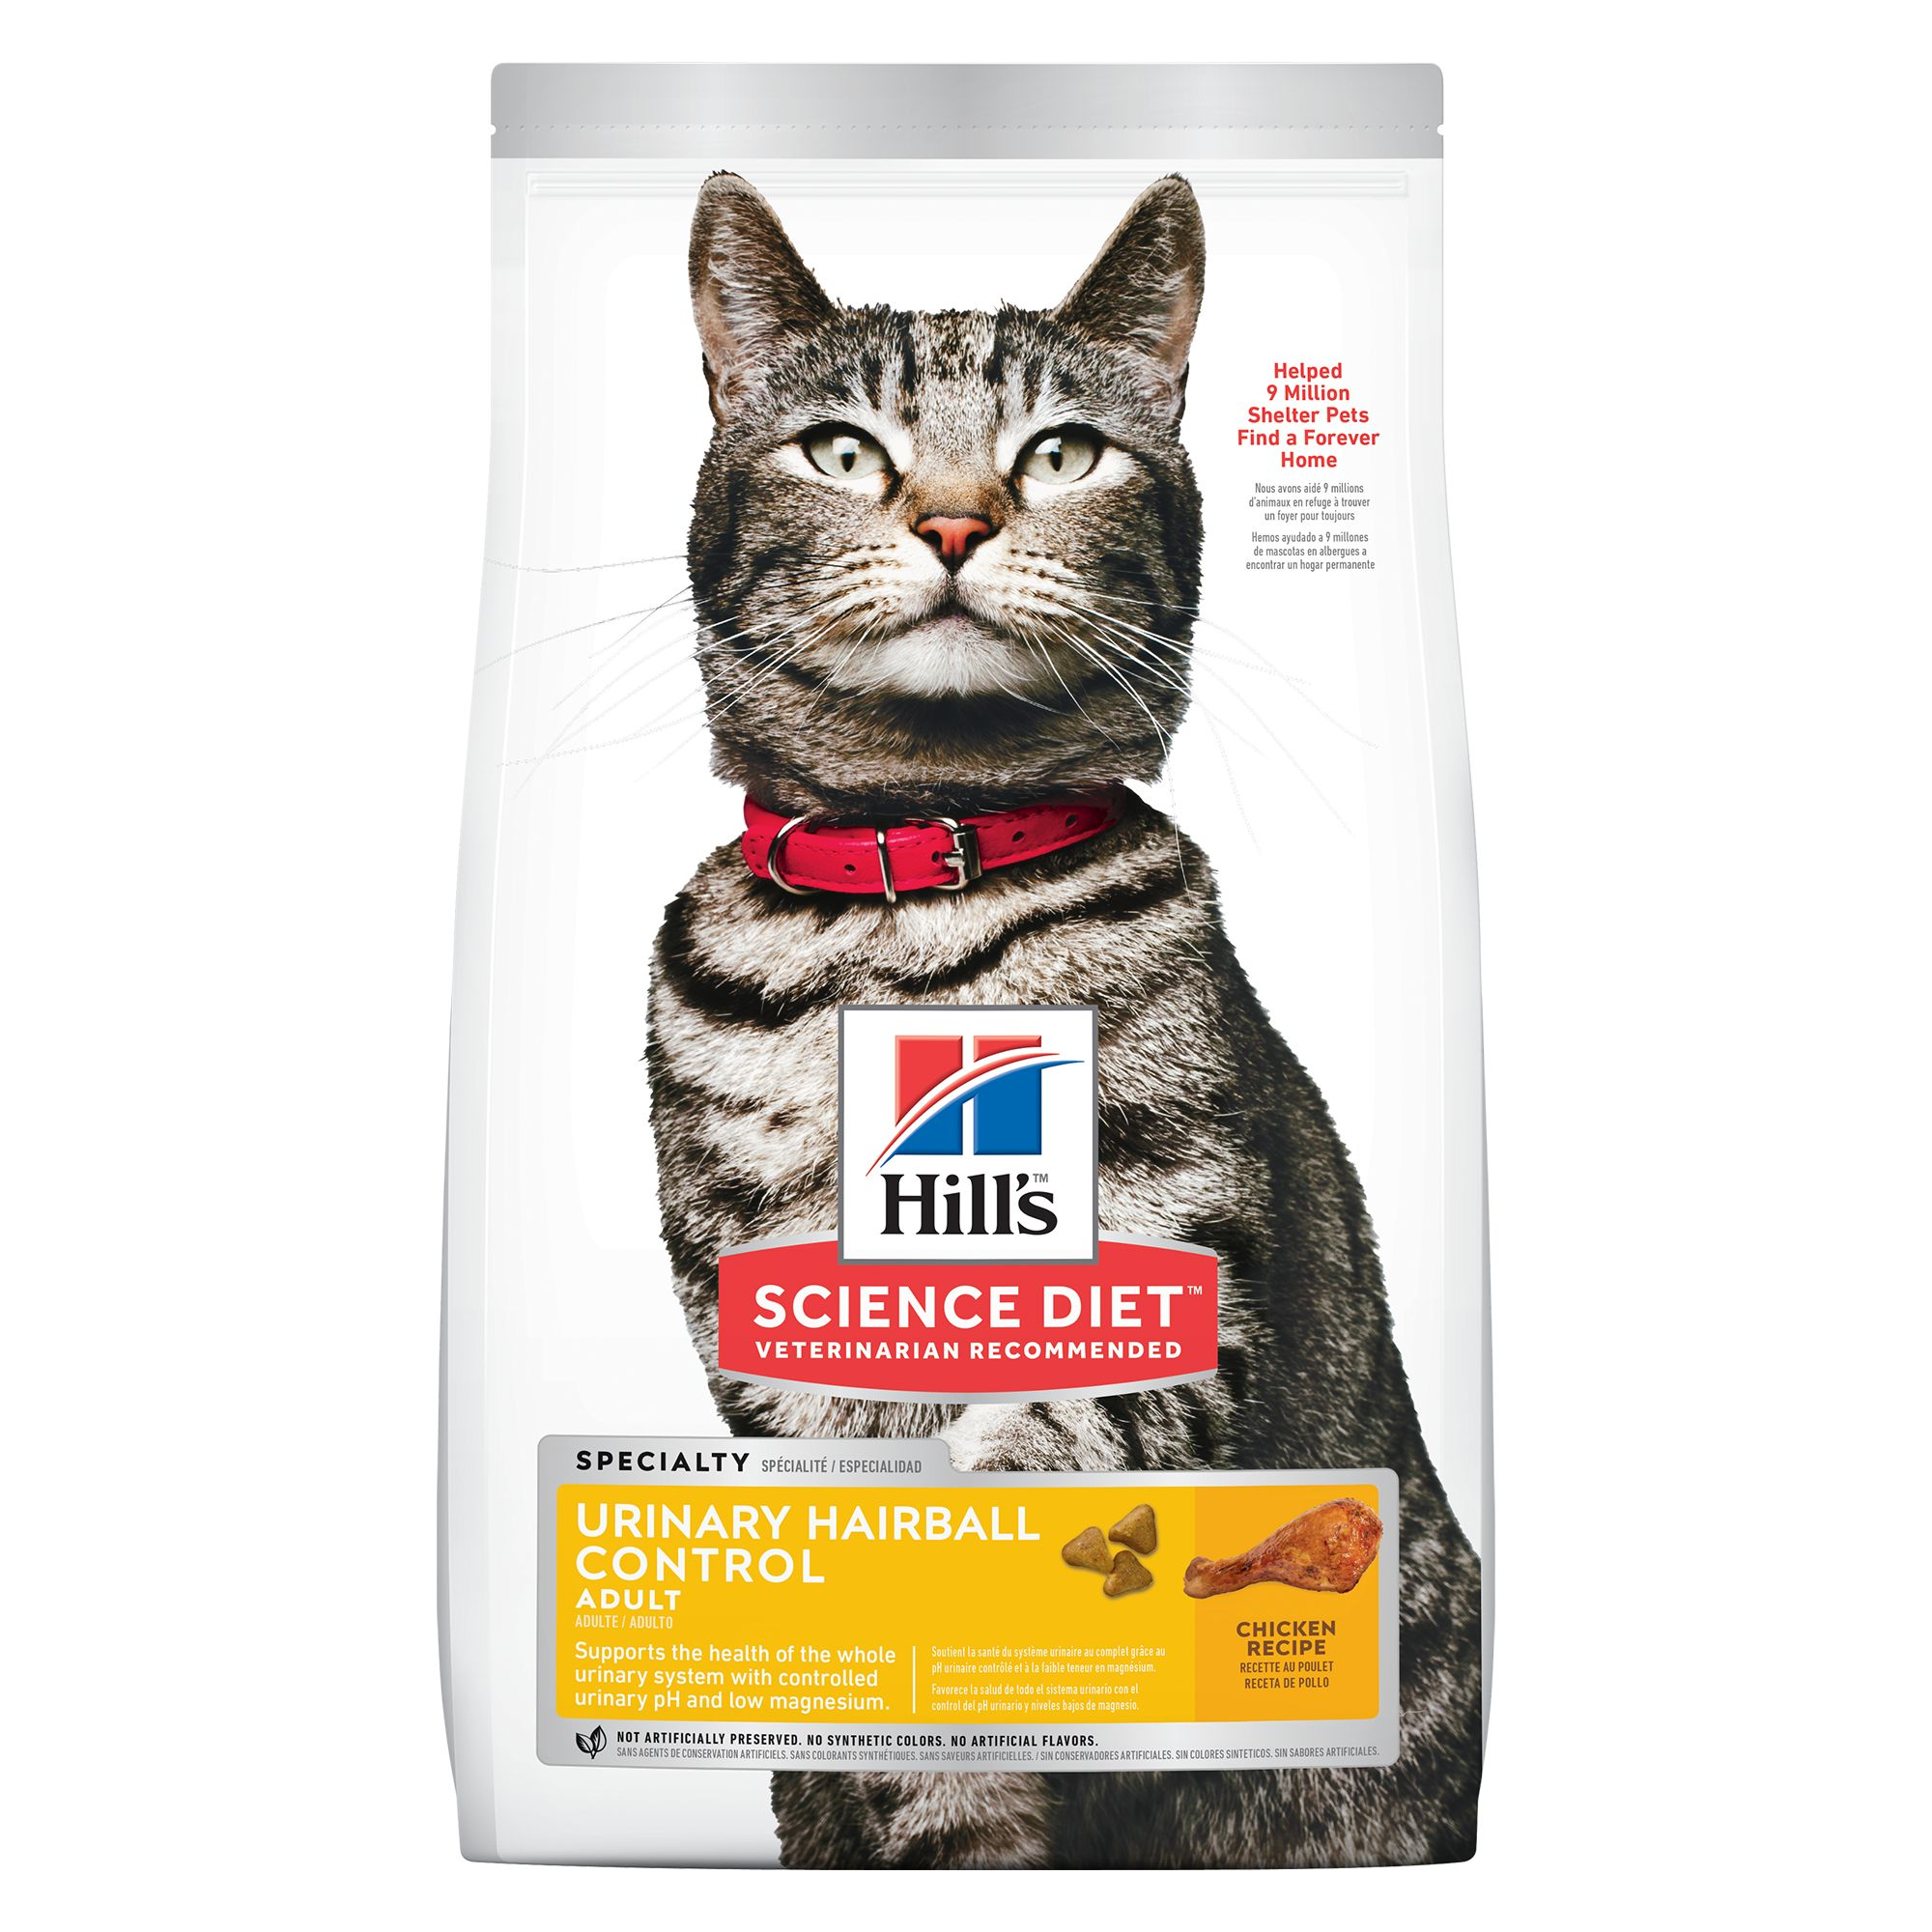 Hill's® Science Diet® Urinary Hairball Control Adult Cat Food - Chicken size: 7 Lb 5237184